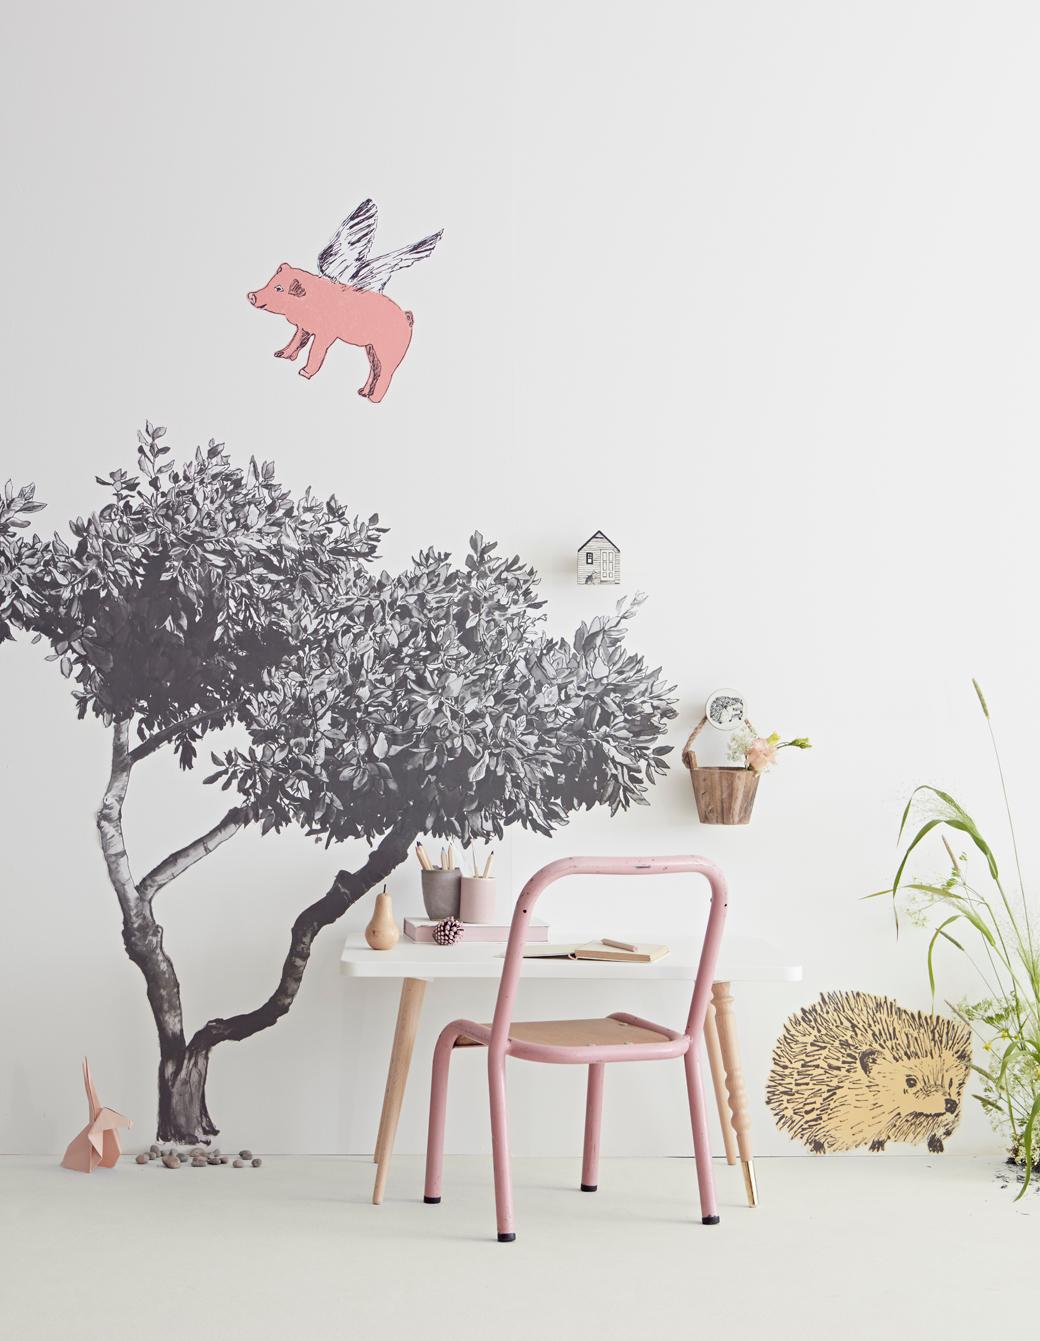 nature inspired wallpaper wall stickers decor8 so many sweet spaces where you could apply sian s creative papers and stickers my favorite is the tree and the teepee space it s something i think my